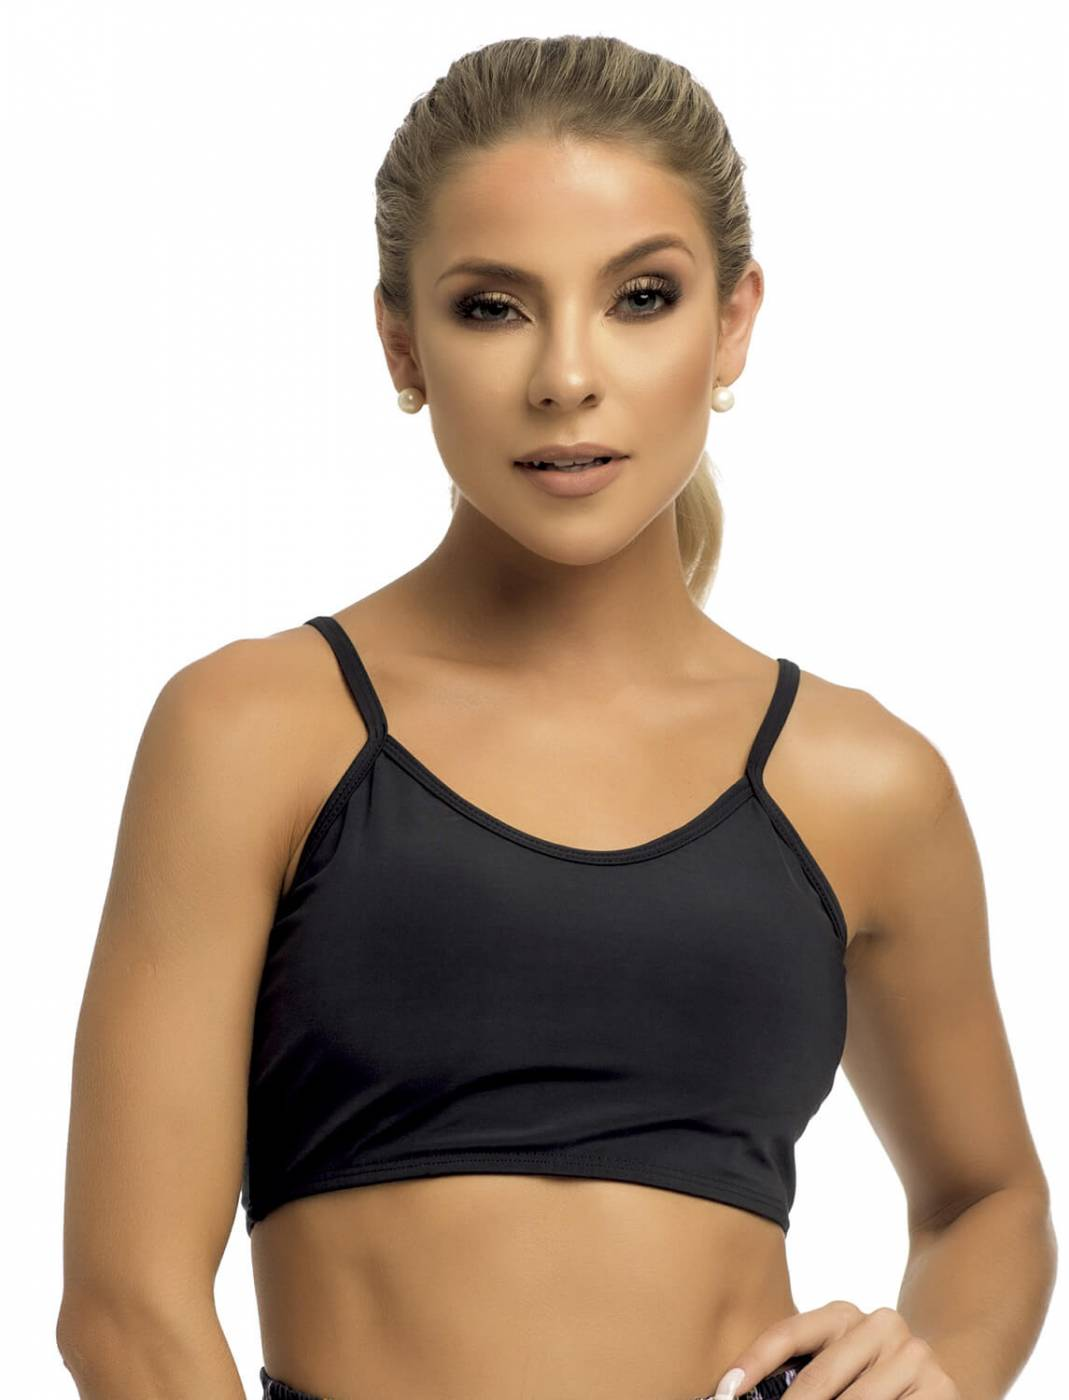 Top Cropped Fitness Black